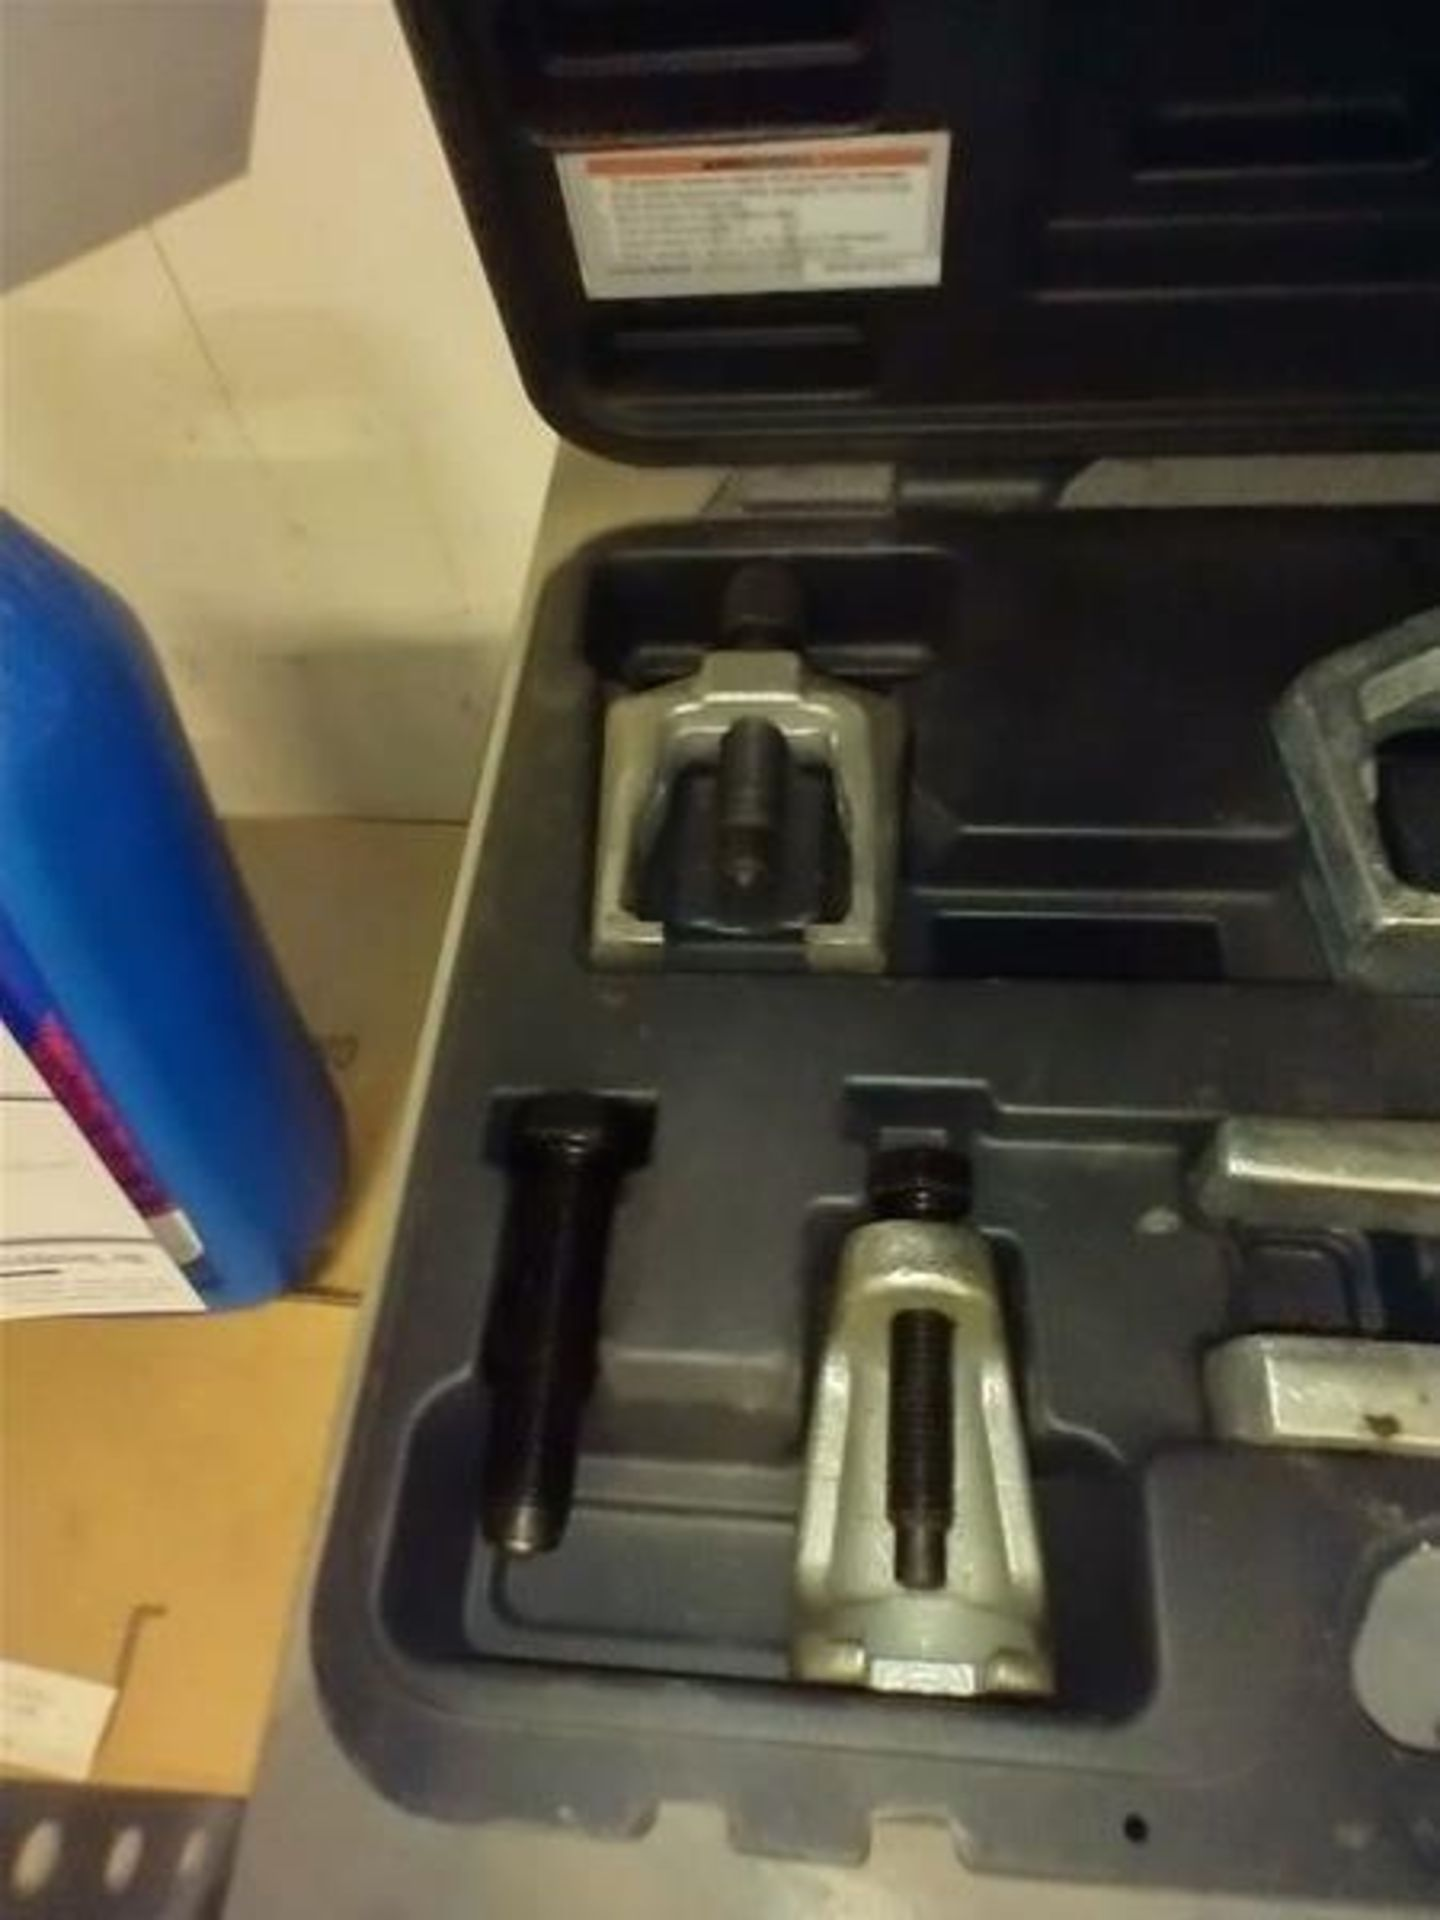 PITTSBURGH 5PC FRONT END SERVICE TOOL SET - Image 2 of 6